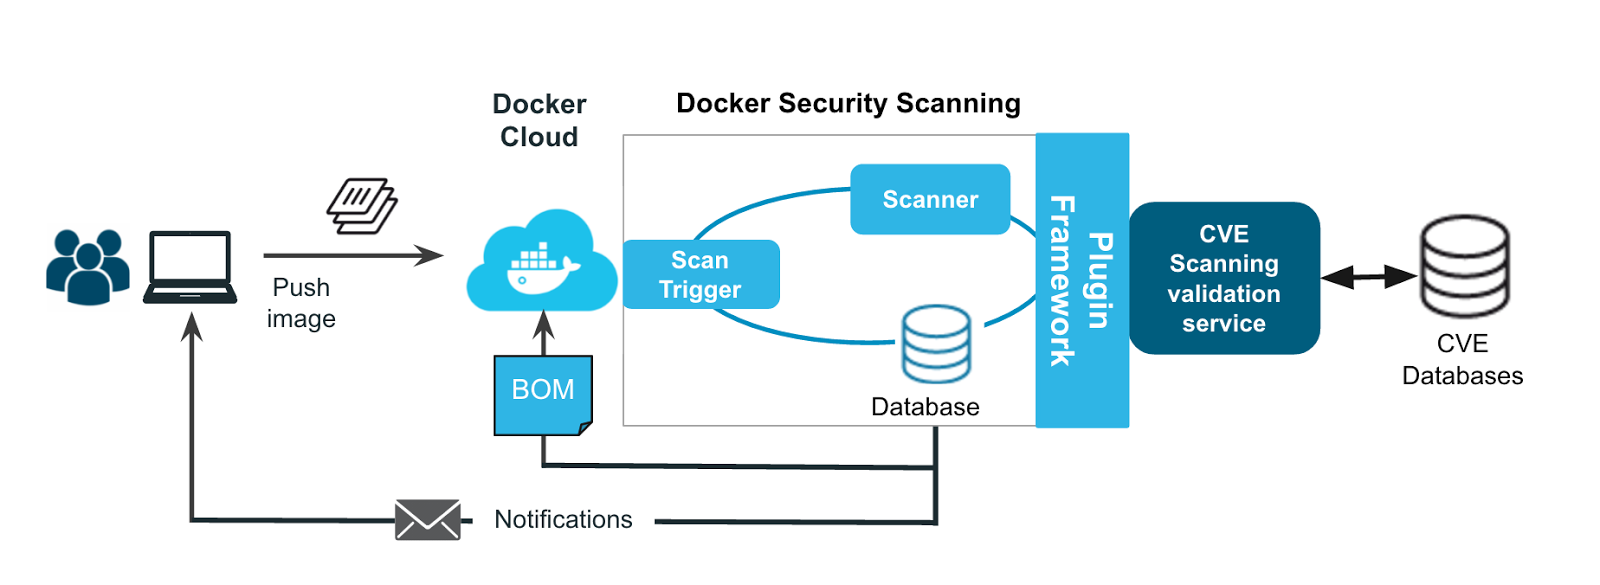 Docker aims to protect container content with Docker